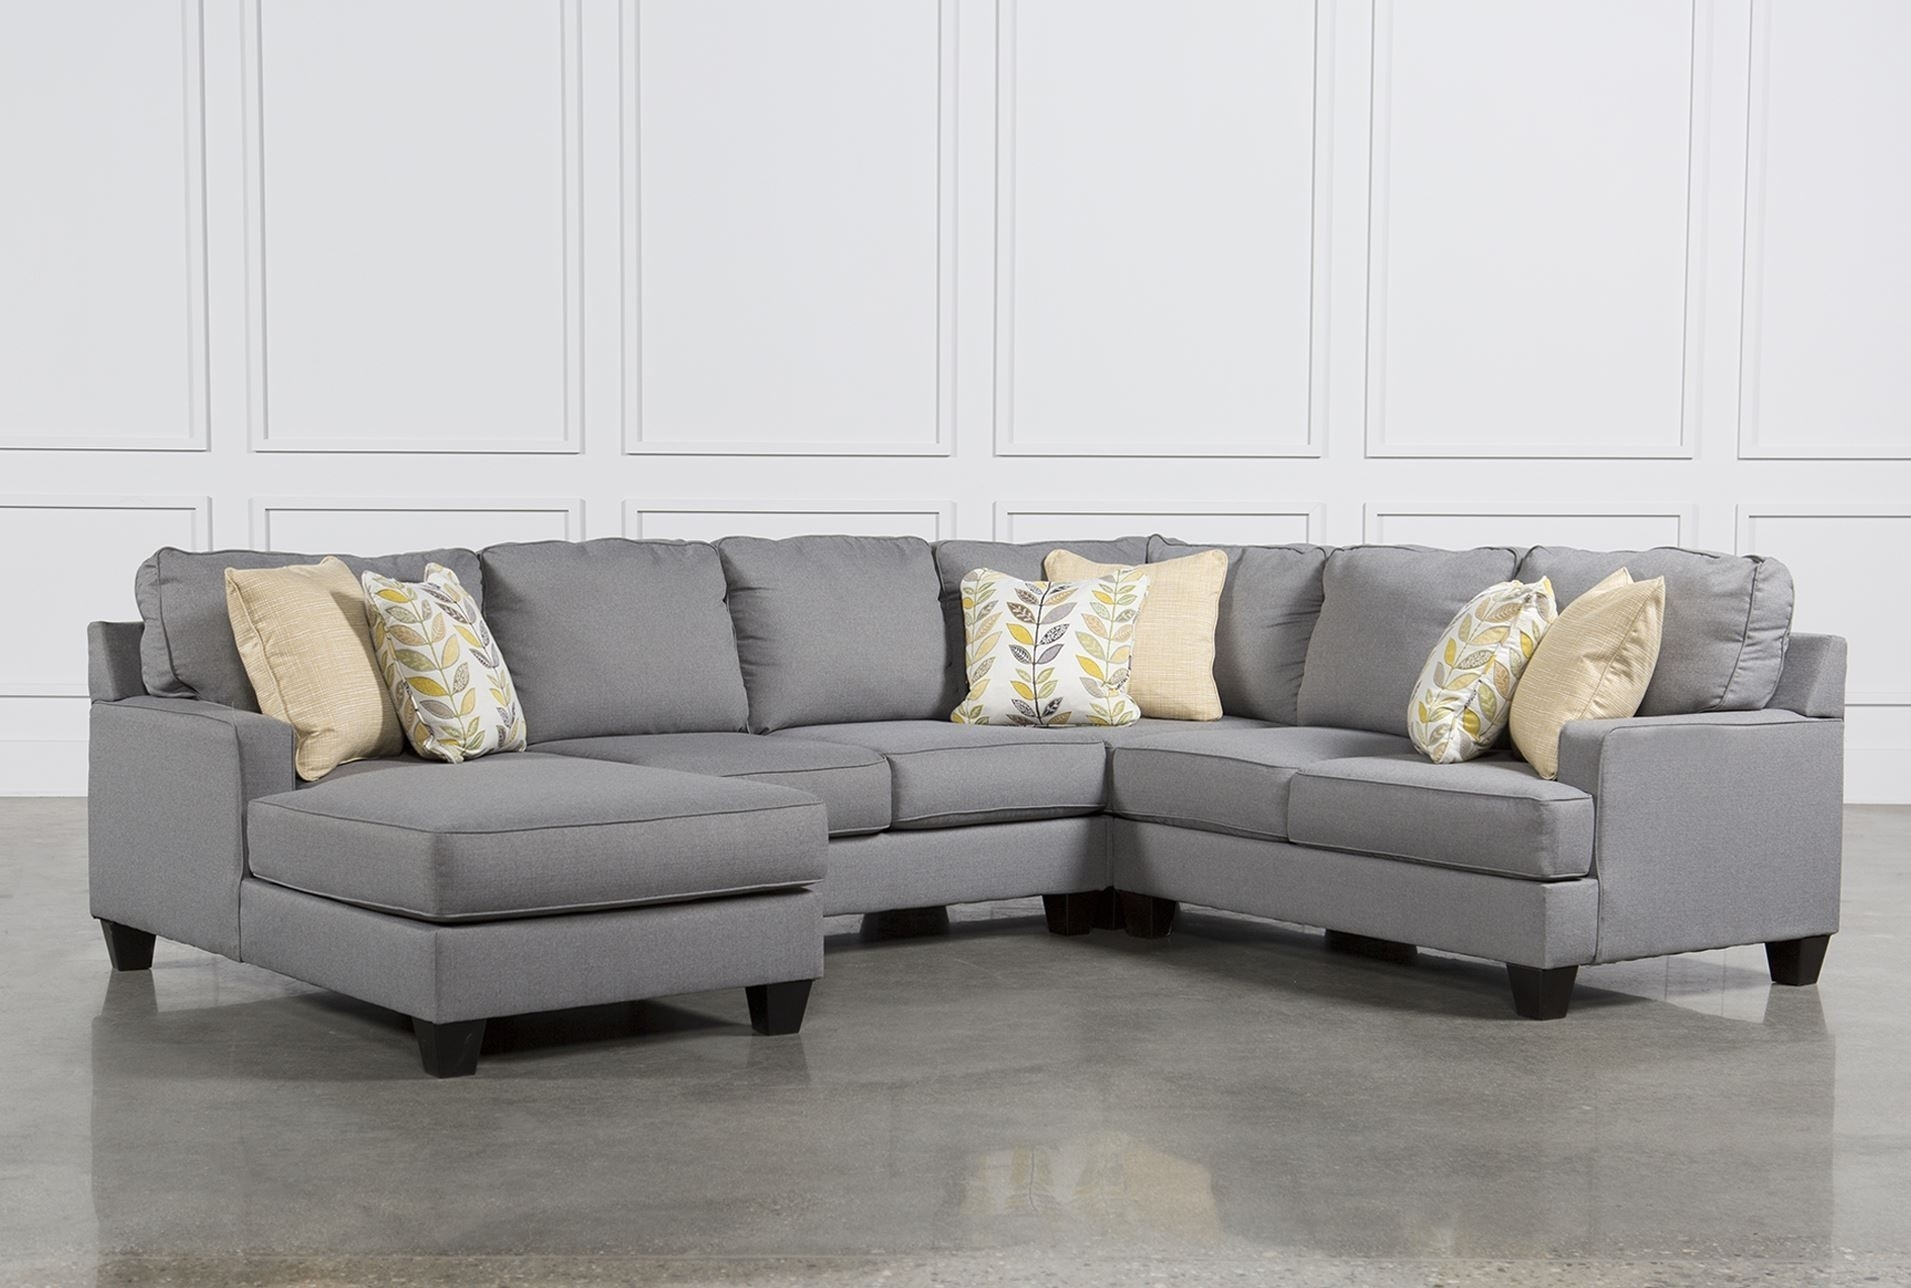 Living Spaces Sectional Couches – Implantologiabogota (Image 14 of 25)